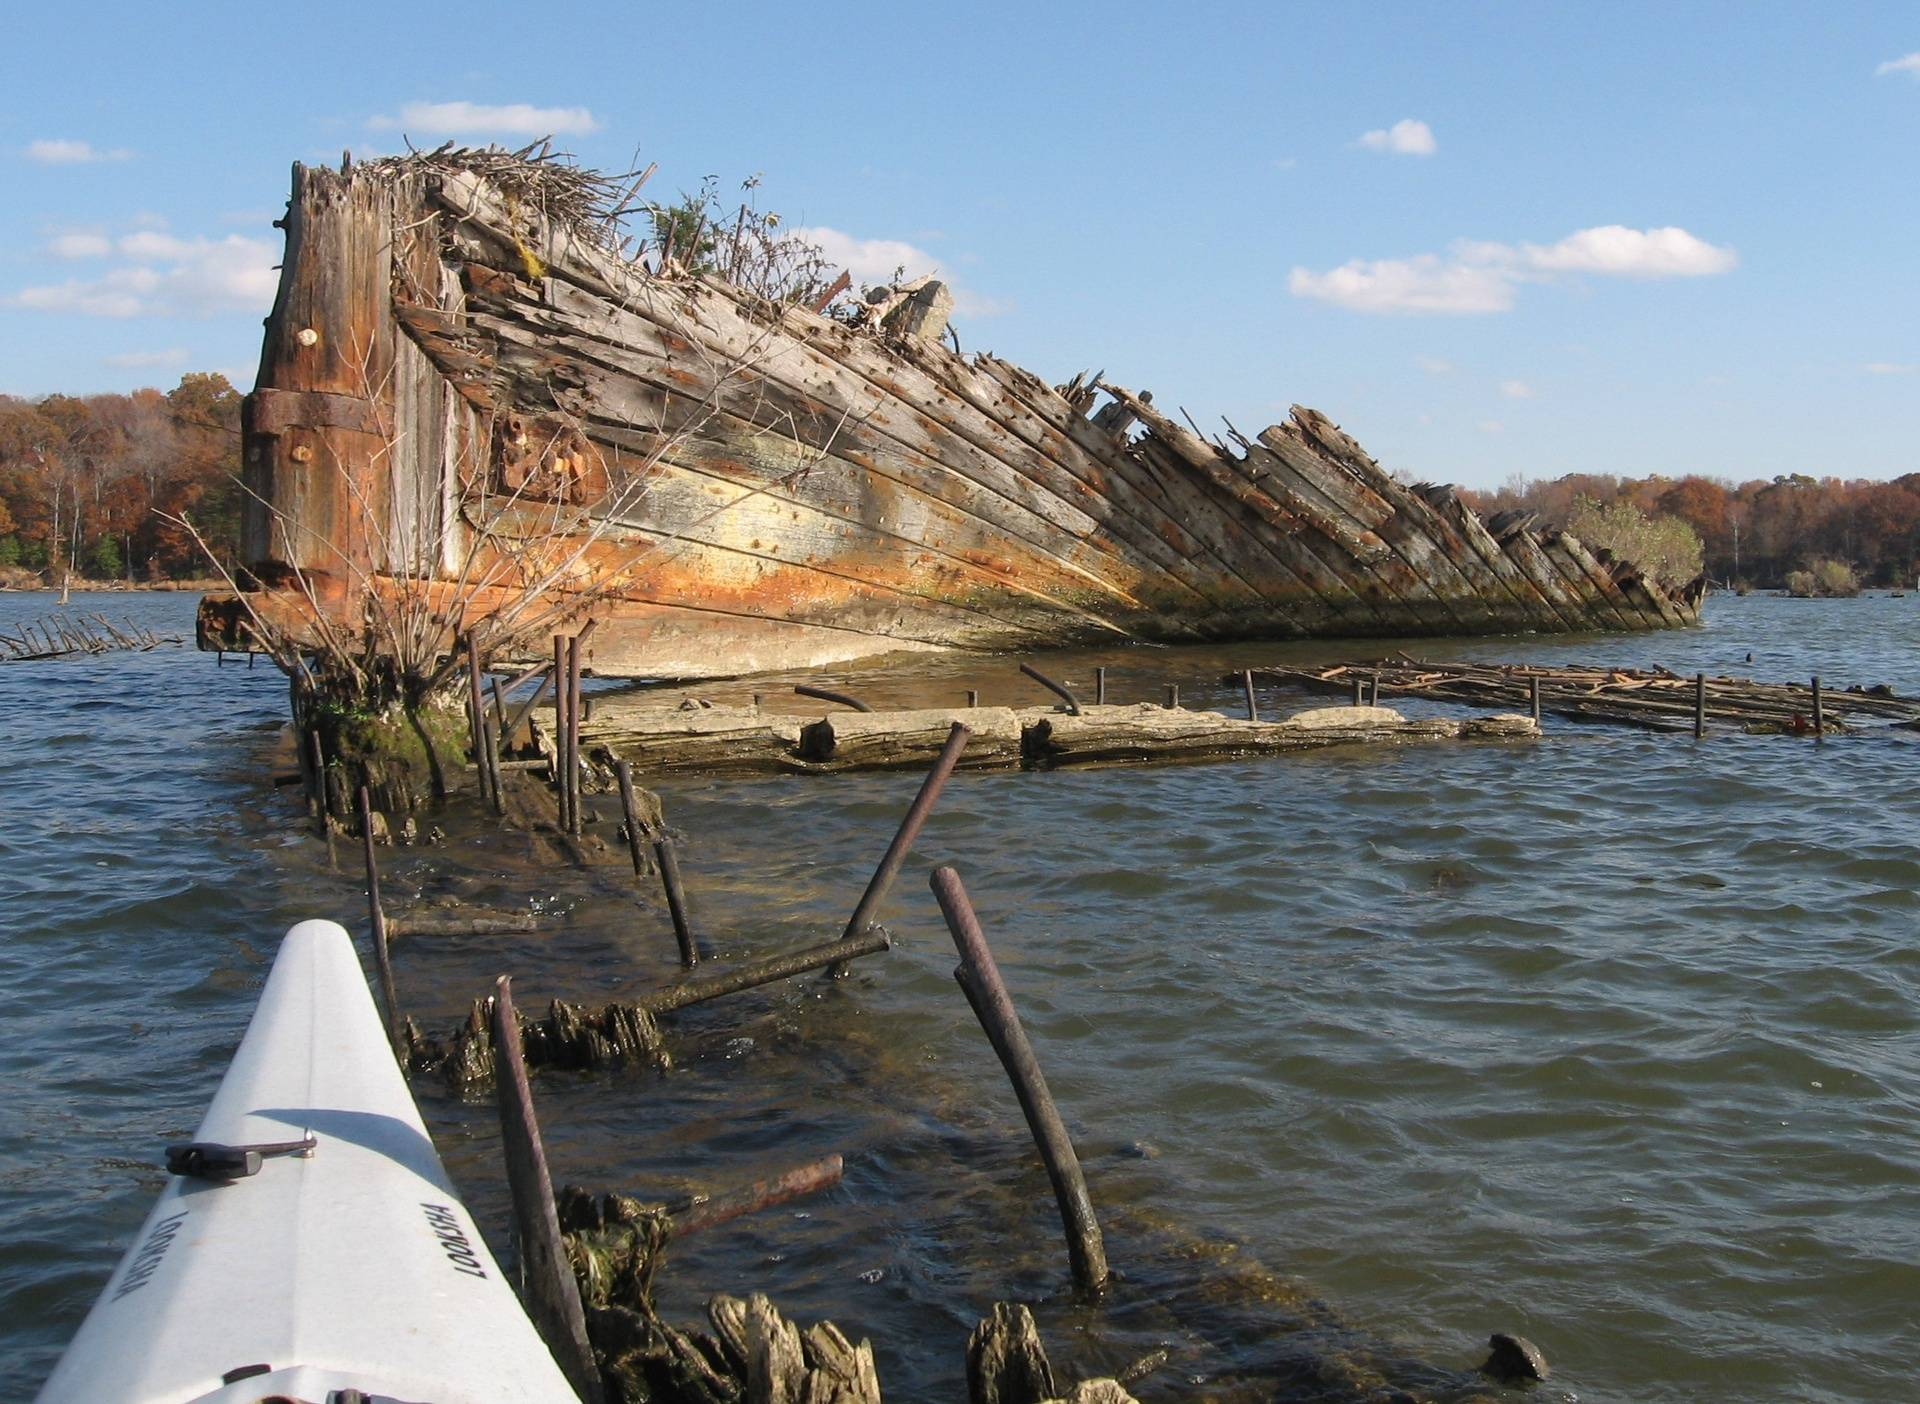 Mallows Bay - Ghost Fleet on Potomac